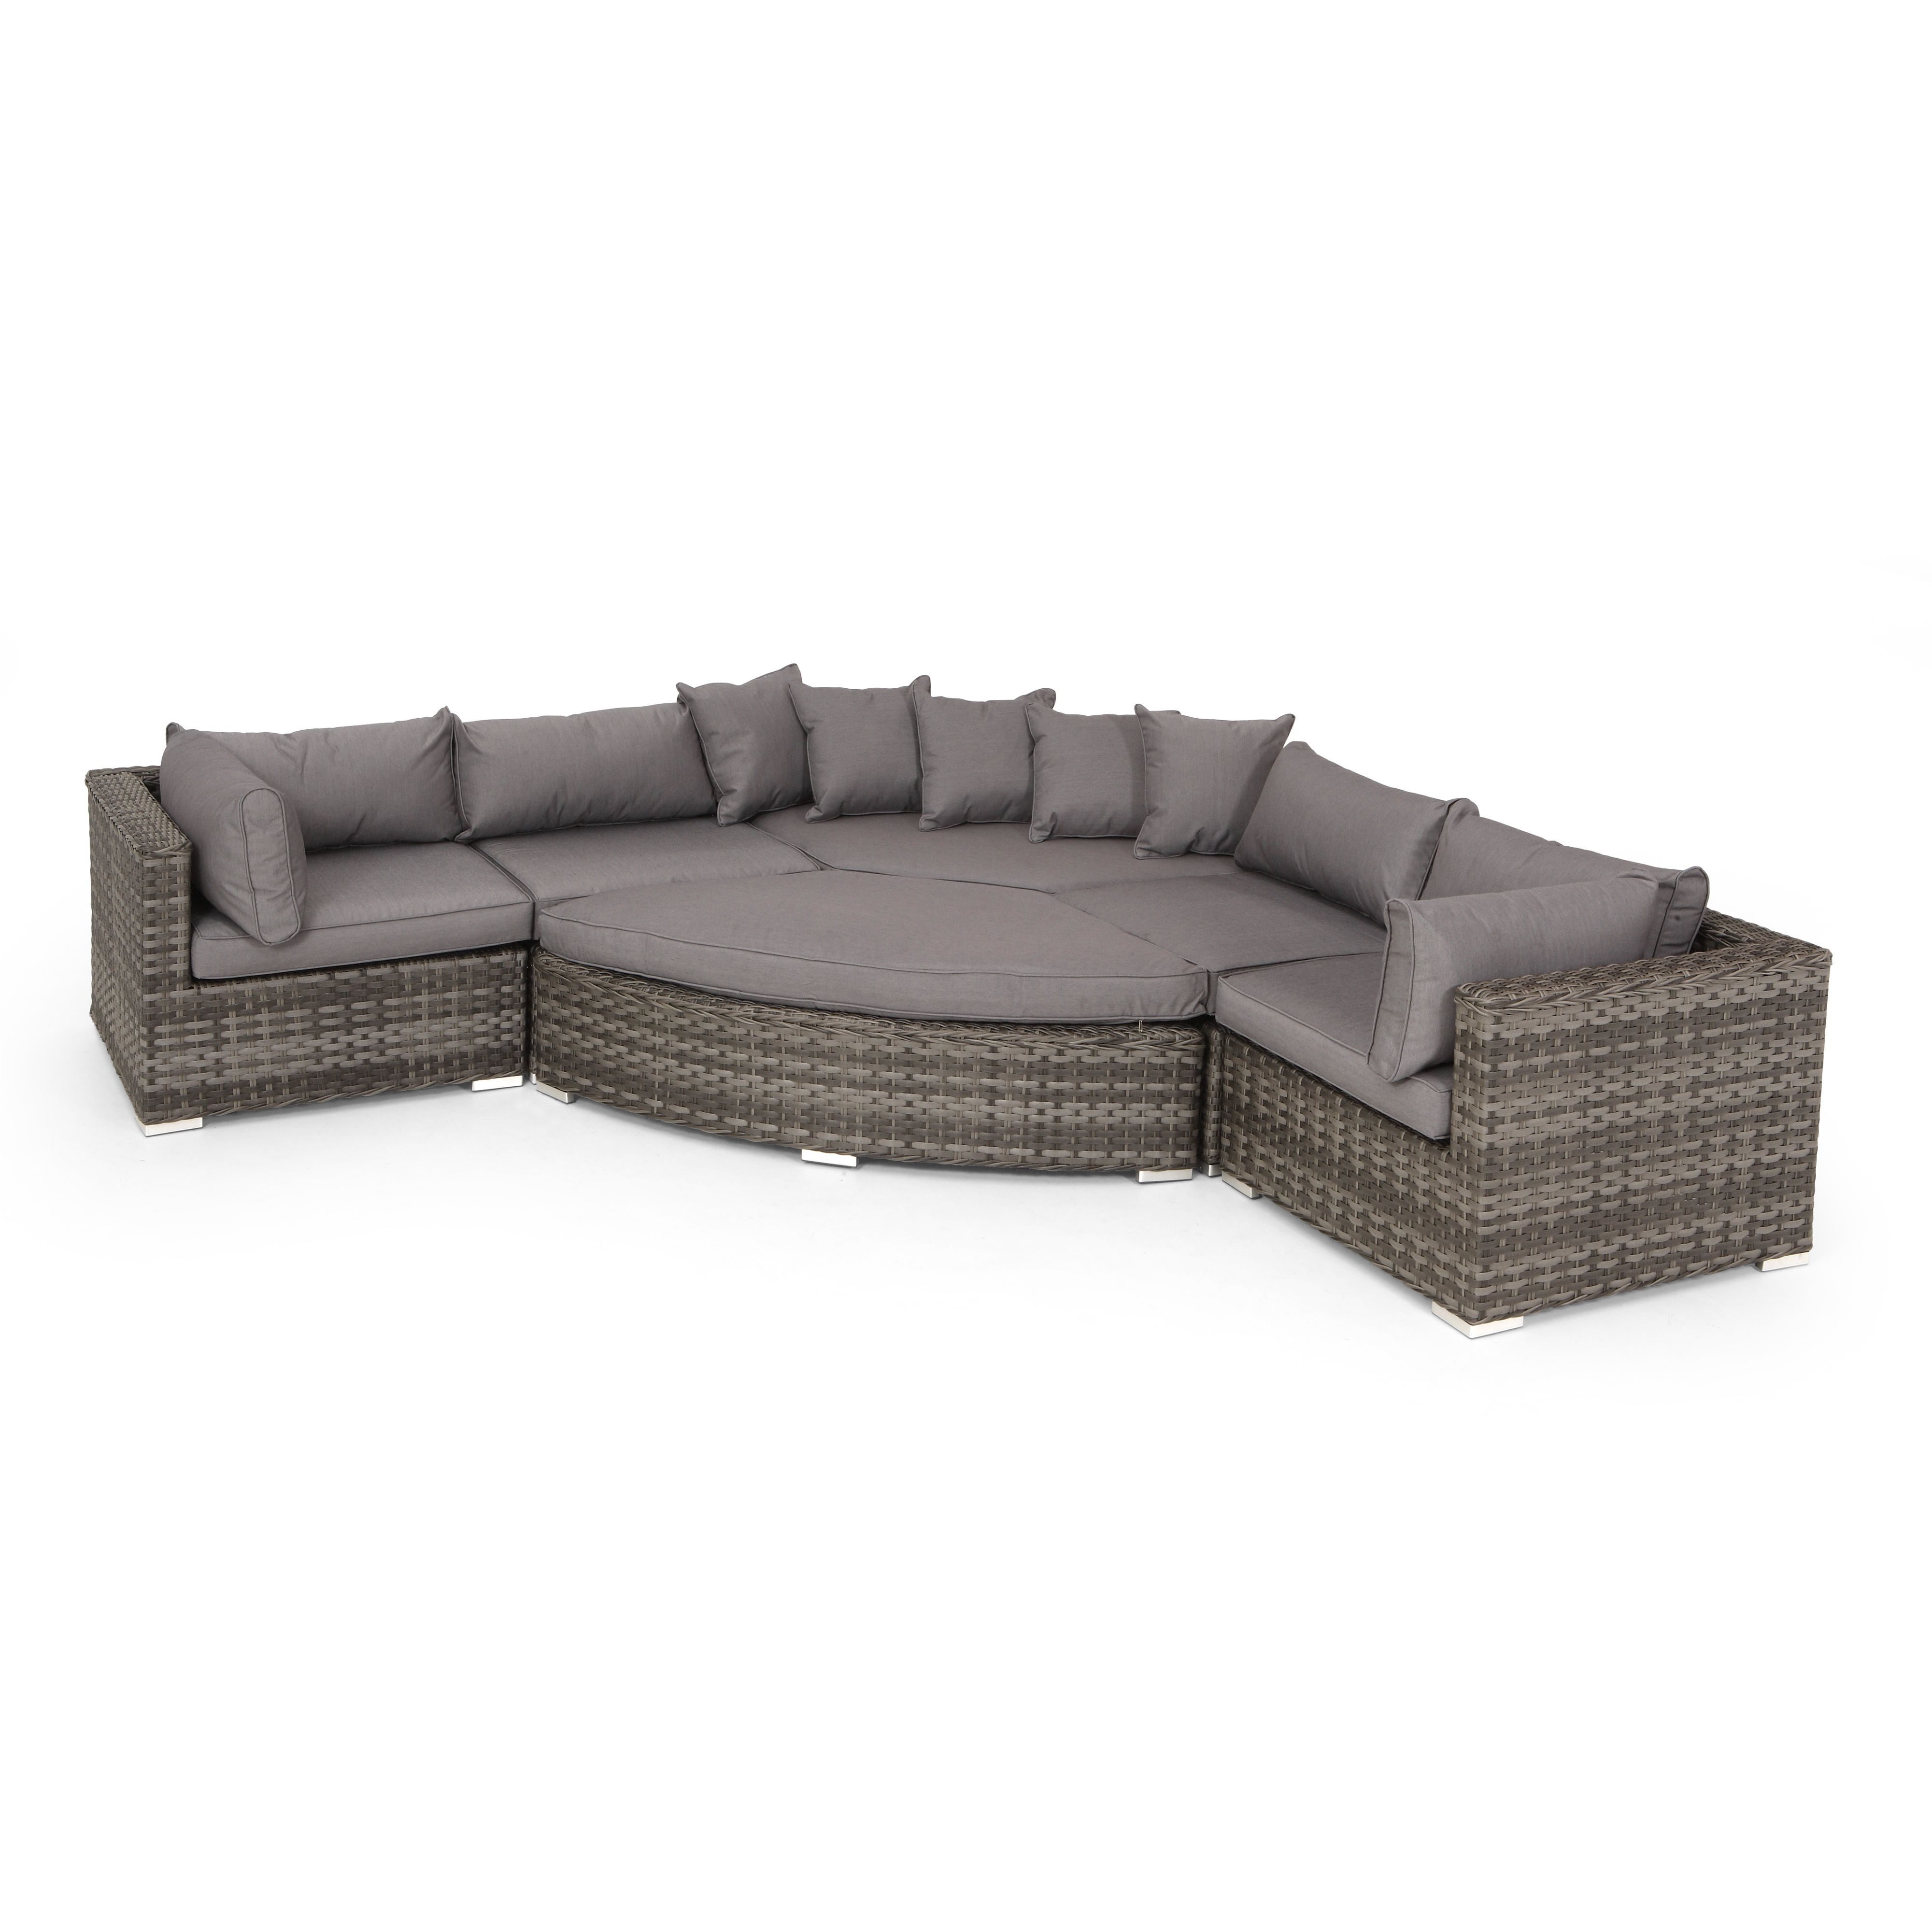 Pacific Grand Corner Set Next Day Delivery Pacific Grand Corner Set From Worldstores Rattan Garden Furniture Rattan Furniture Set Corner Sofa Set